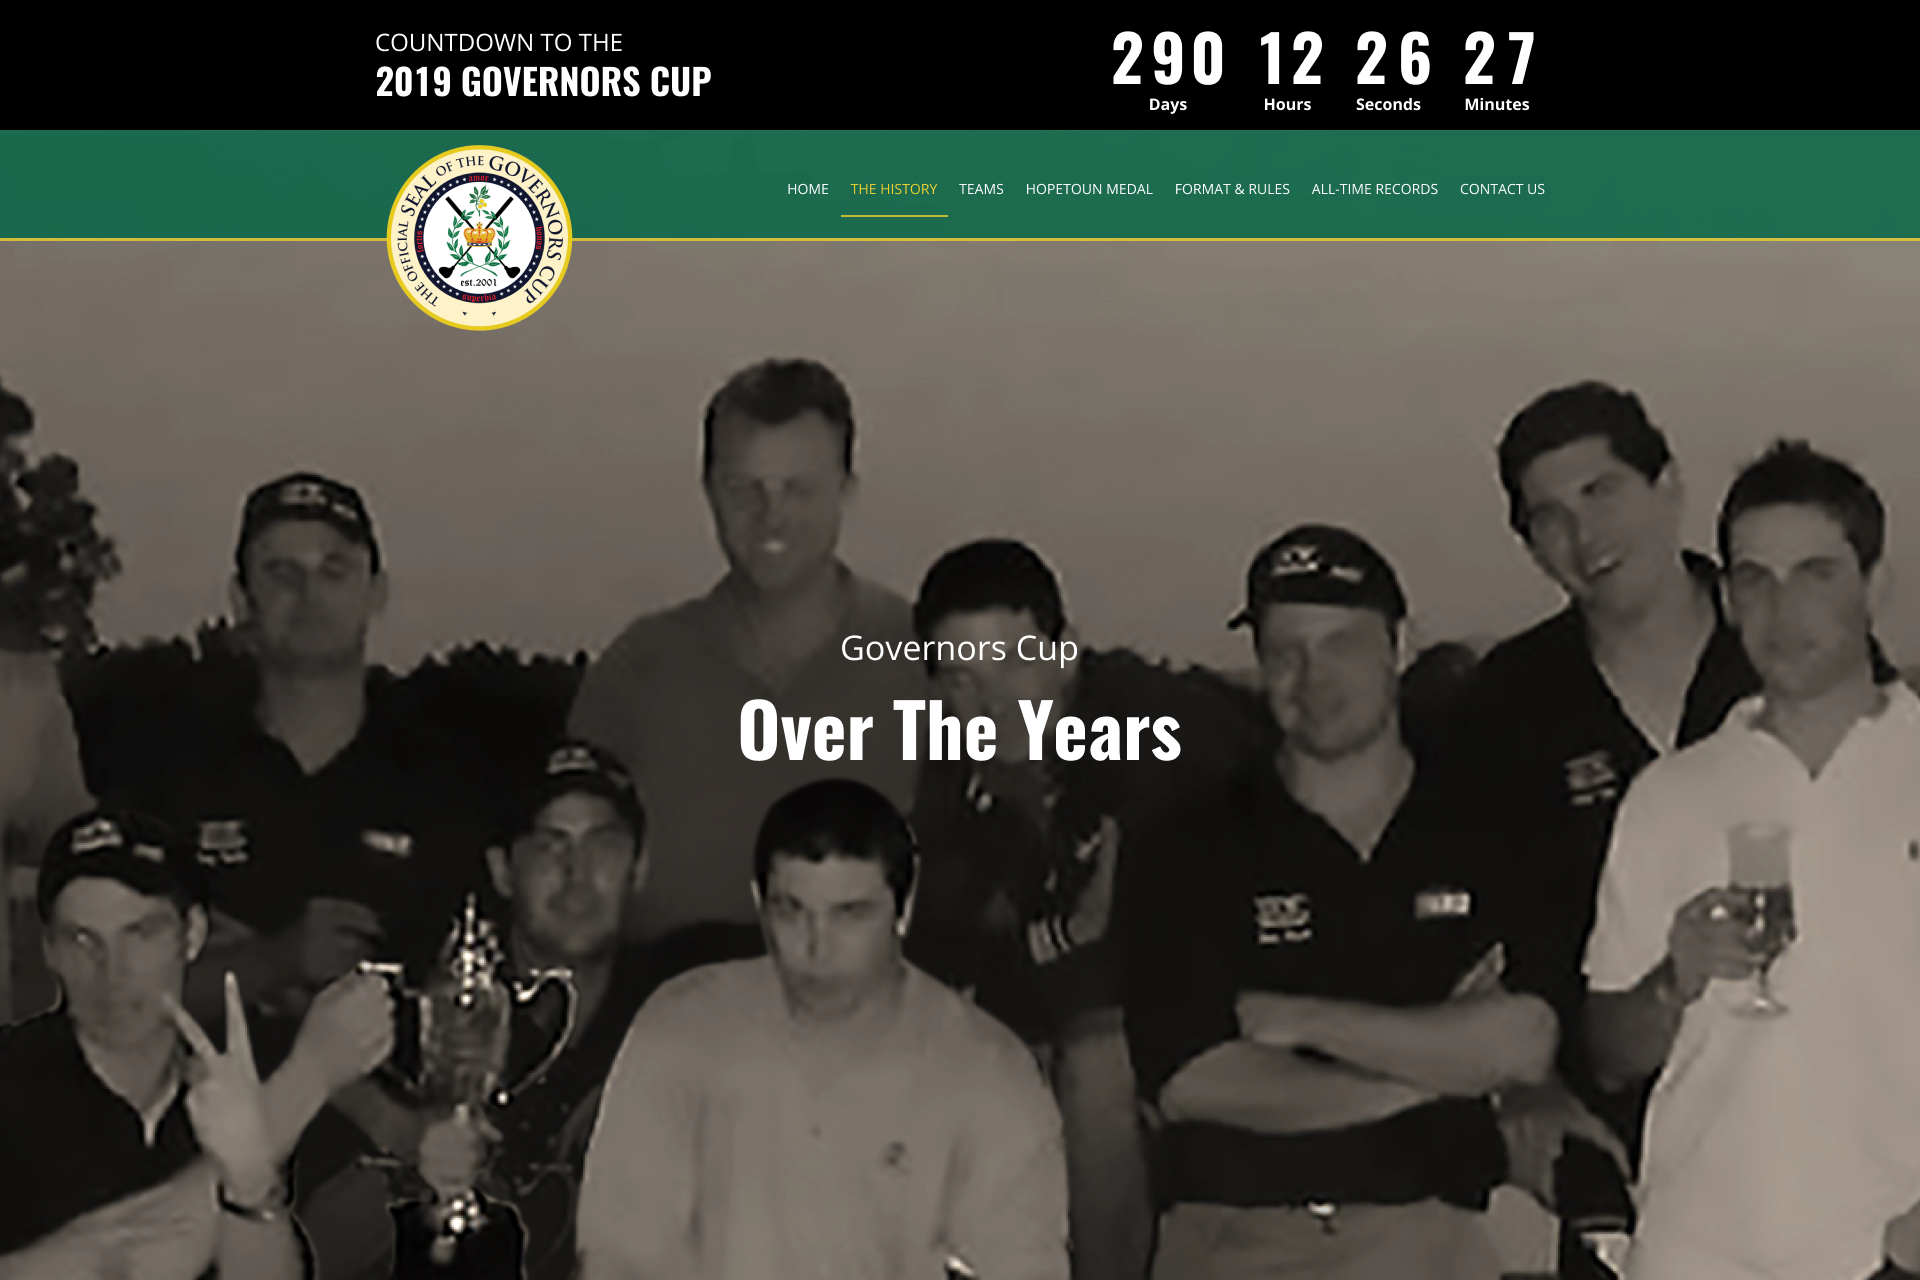 Number countdown| Old stock image| Golf players| Governor's Cup| Website Design Development| SEO optimized Solutions